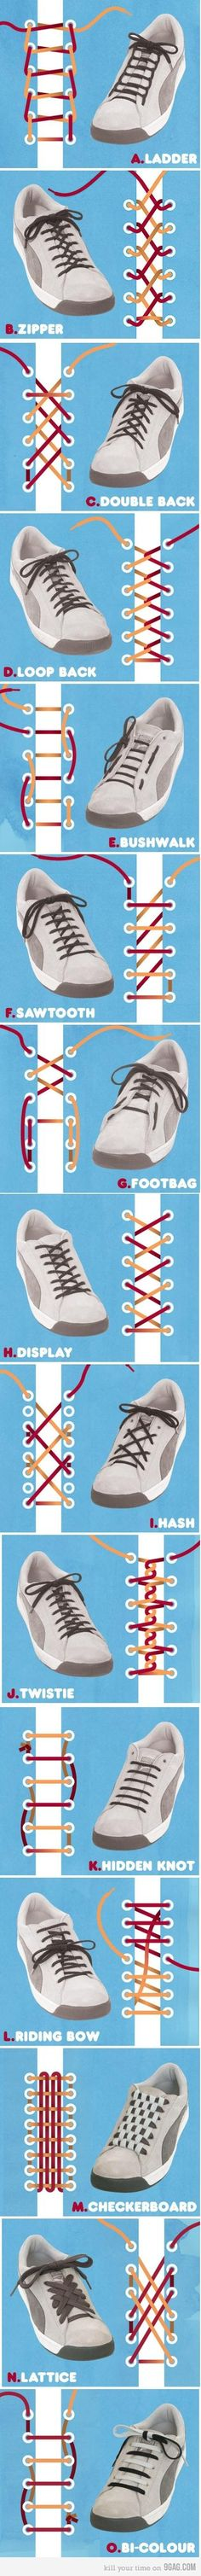 15 Cool Ways to Tie Shoes